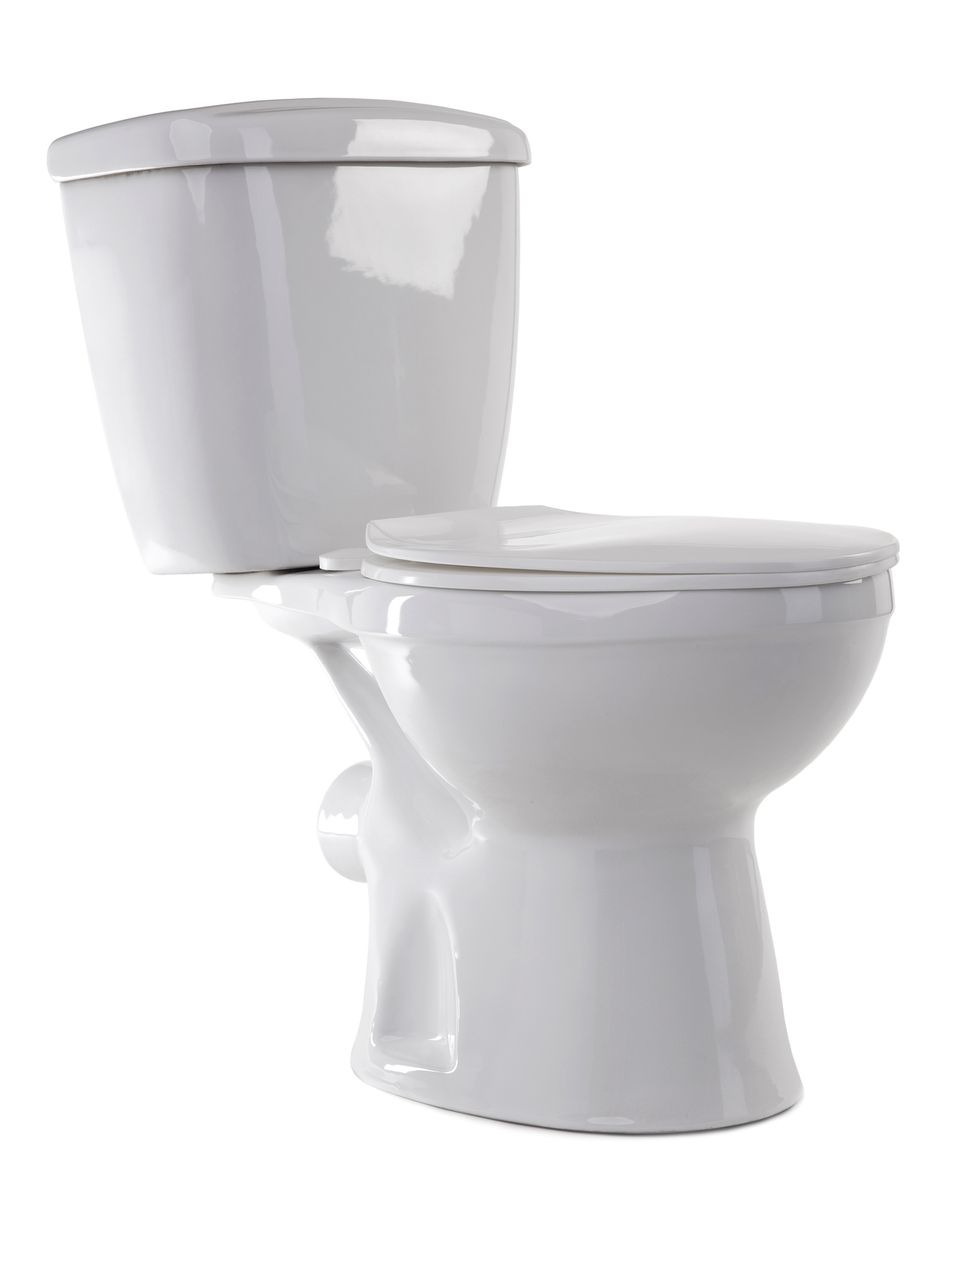 White enamel toilet on a white background